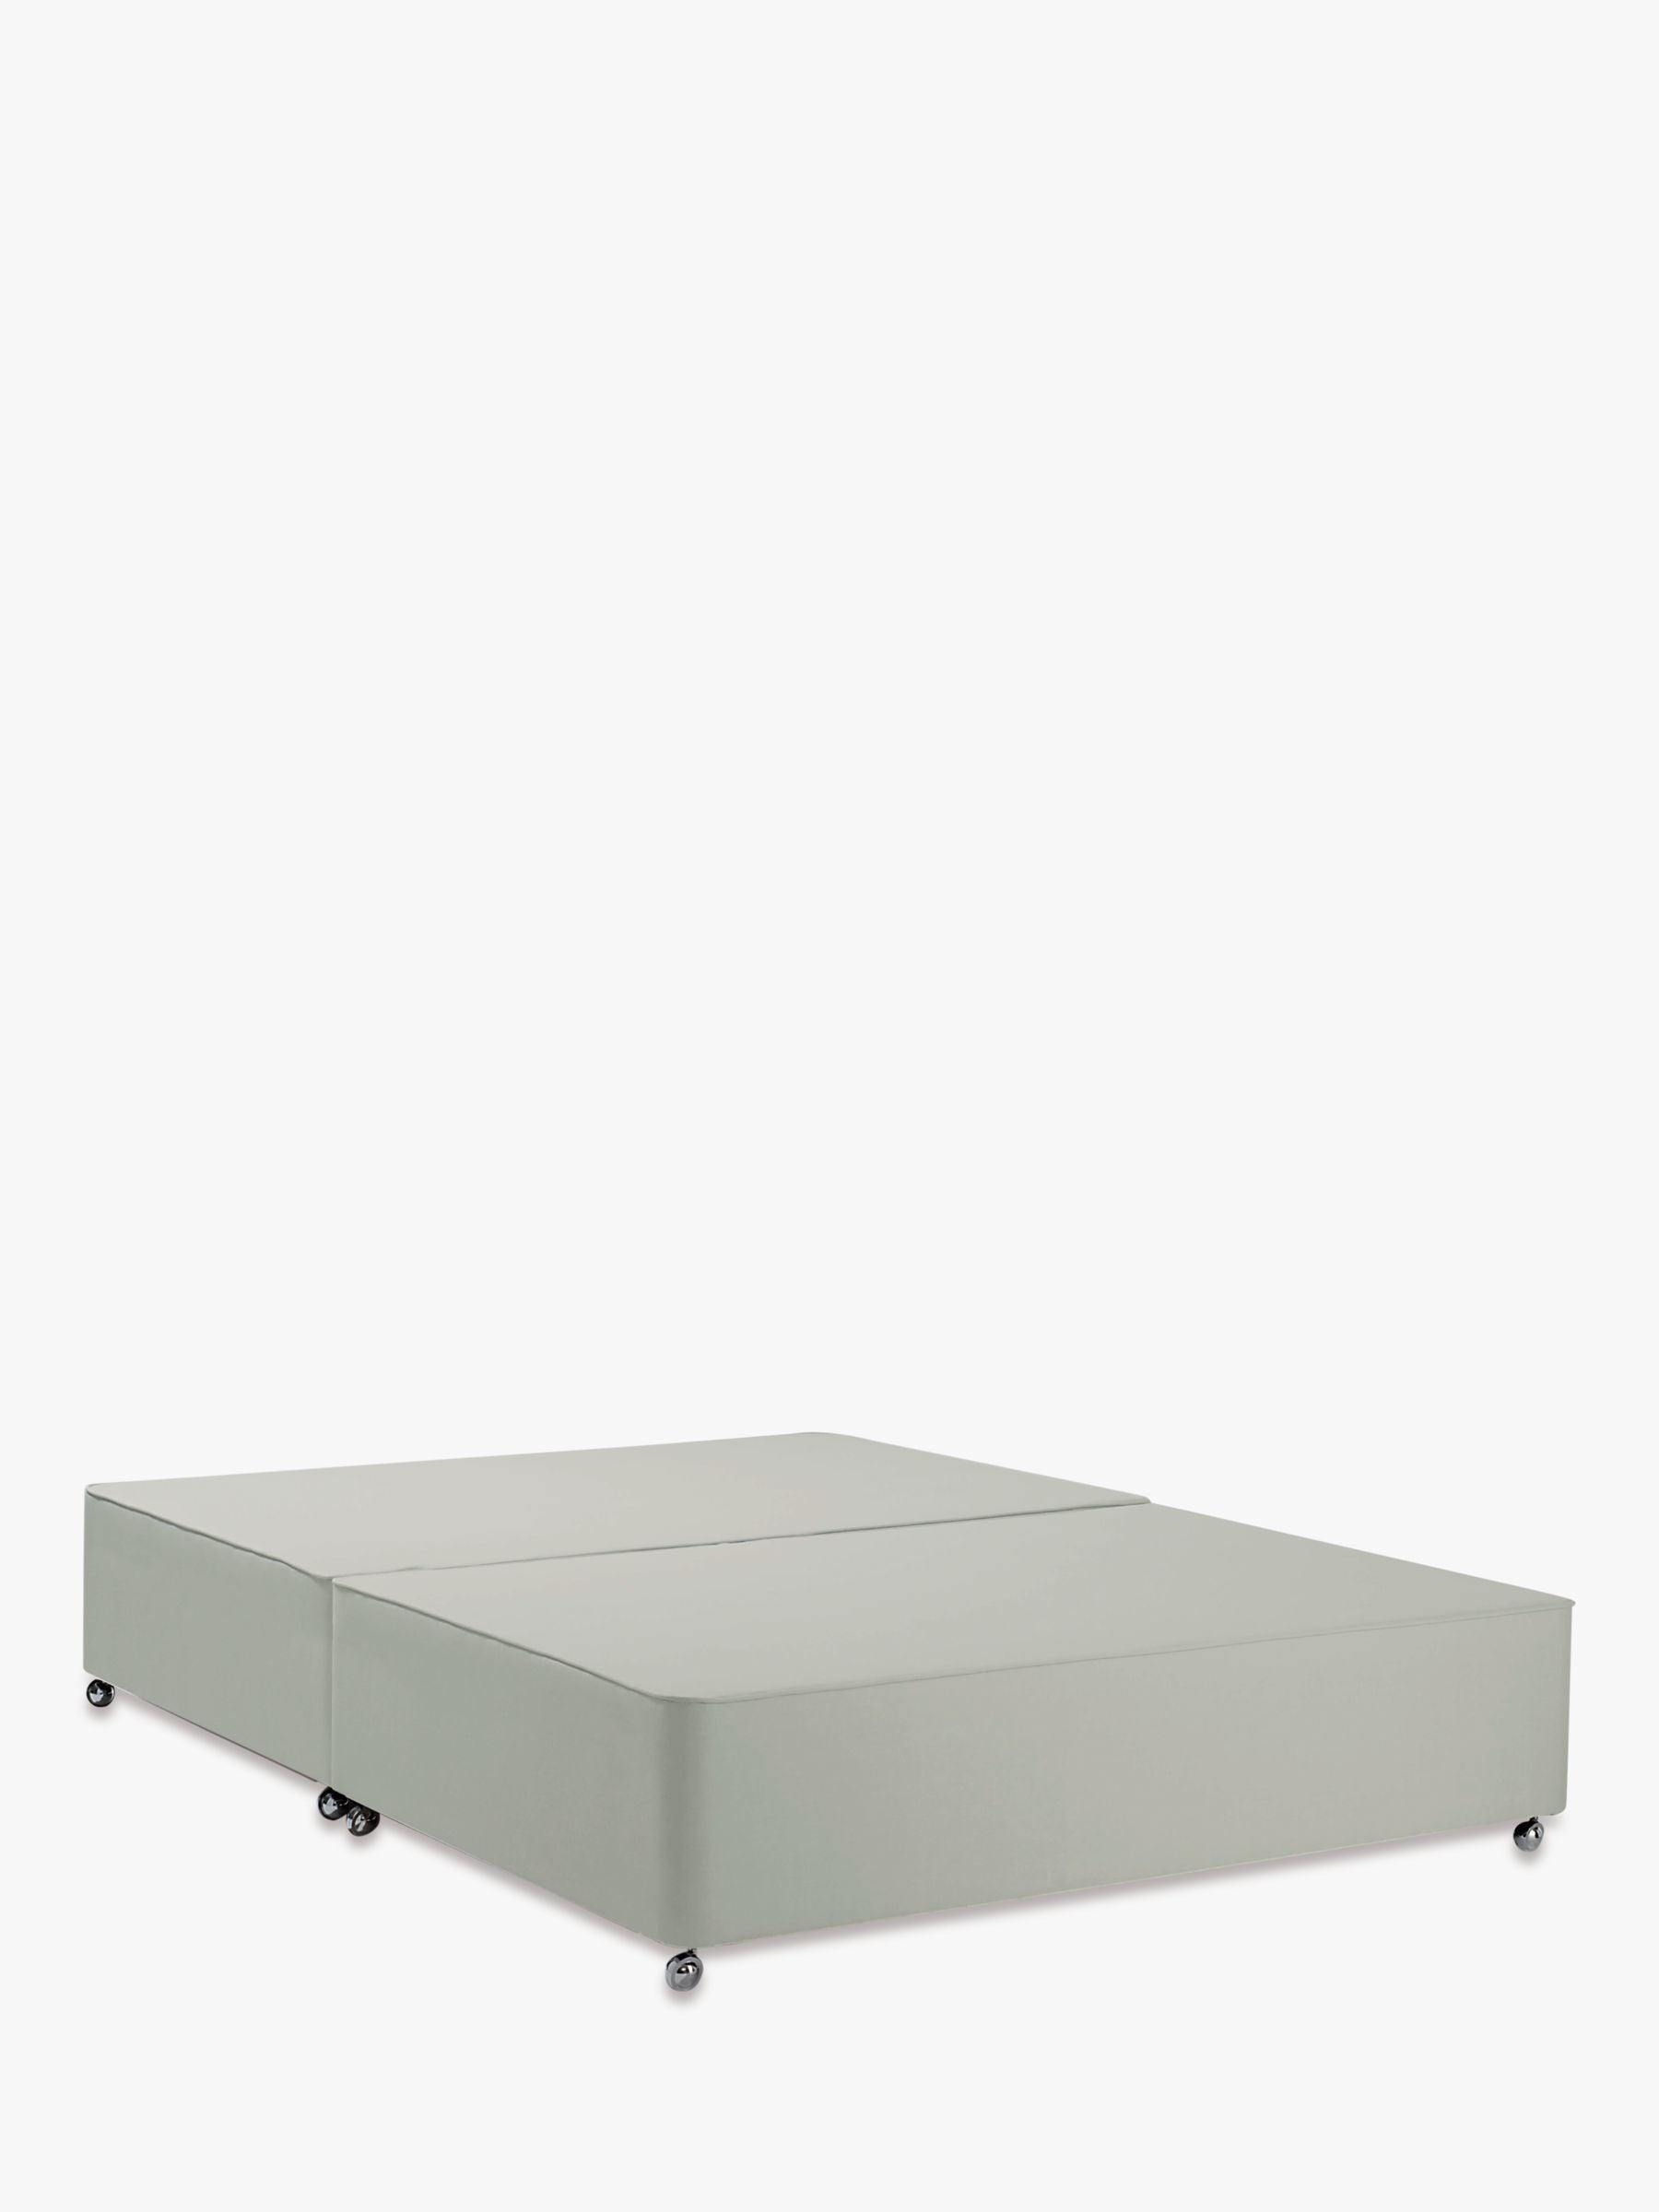 John Lewis & Partners Non-Sprung Upholstered Divan Base, King Size, Canvas Stone Grey, FSC-Certified (Pine)